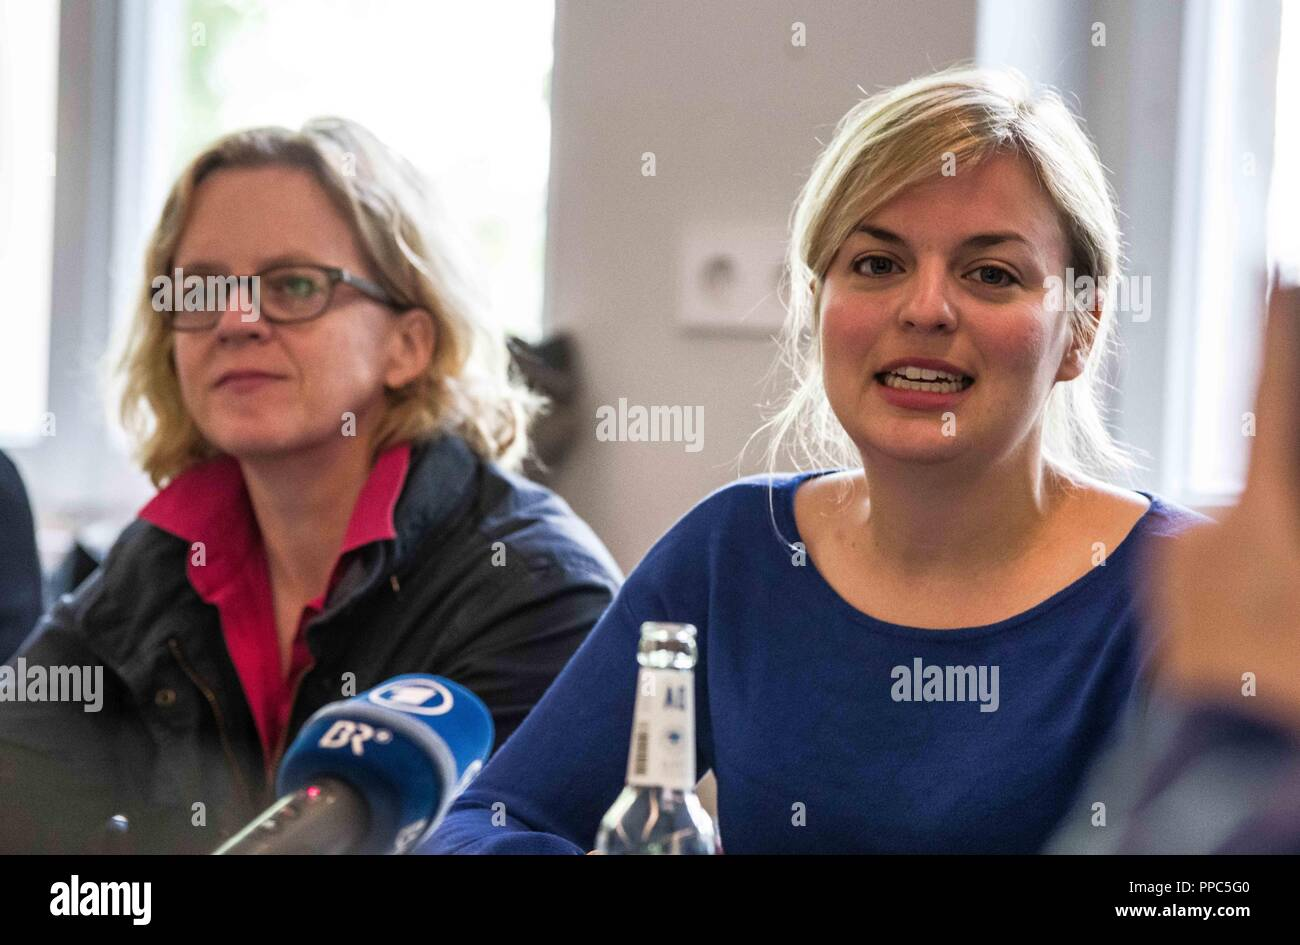 Munich, Bavaria, Germany. 25th Sep, 2018. NATASCHA KOHNEN of the SPD and KATHARINA SCHULZE of the Green Party. Citing the increasing politics of fear and attacks on civil and human rights, some 55 civil groups, organizations, and political parties have organized a follow up to the successful Munich NoPAG demonstration against the PAG Police Assignment Laws. The groups state that the increasingly exclusionary and populistic politics of the CSU and the AfD, along with the Polizeiaufgabengesetze (PAG Police Assignment Laws) are turning citizens into objects, which is a prerequisite for aut - Stock Image